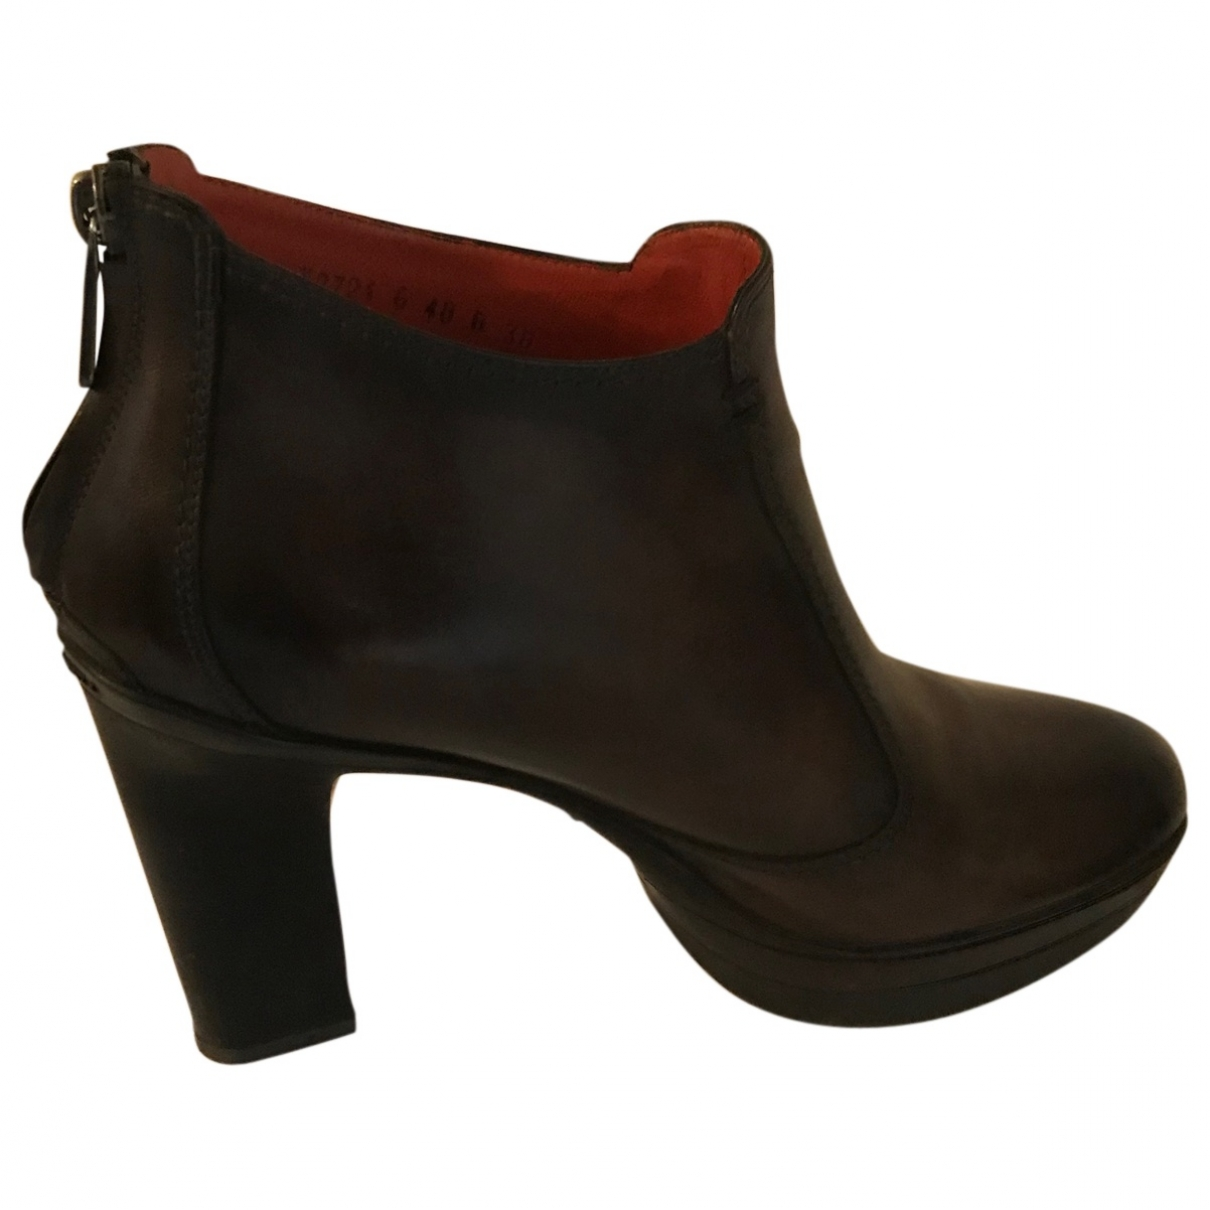 Santoni \N Brown Leather Ankle boots for Women 38 EU